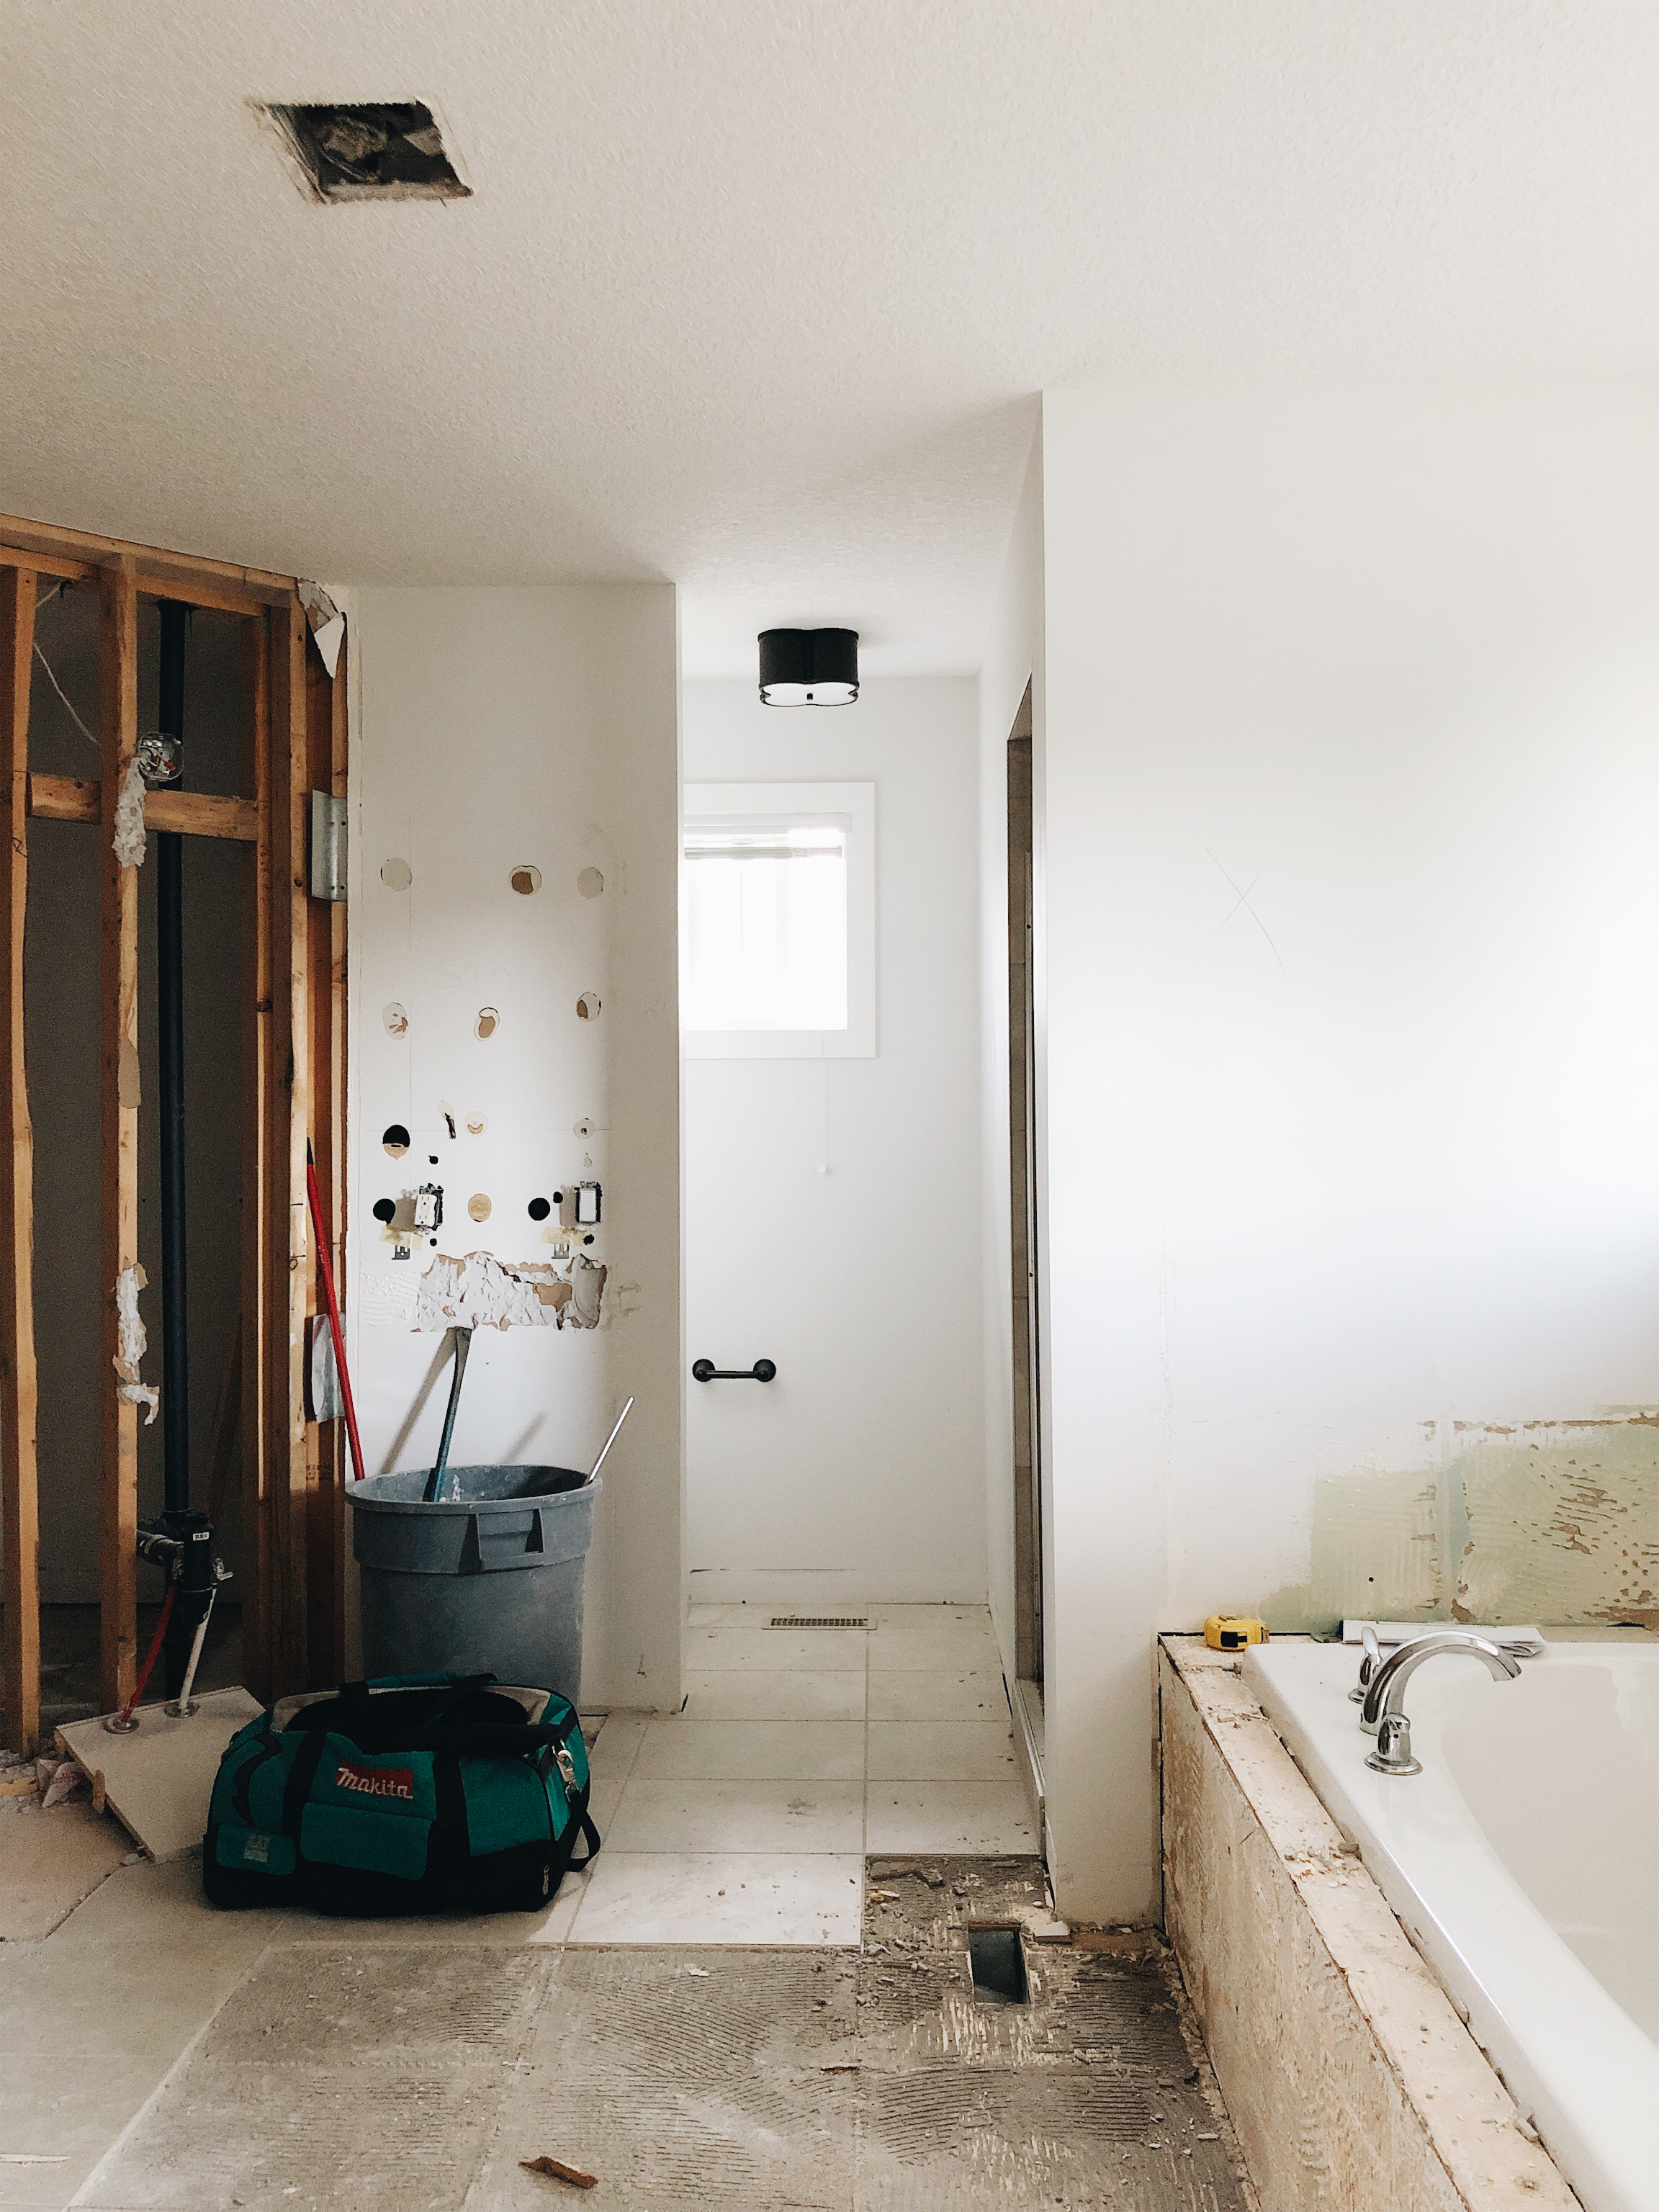 Our ensuite is in full swing renovation mode. So excited!